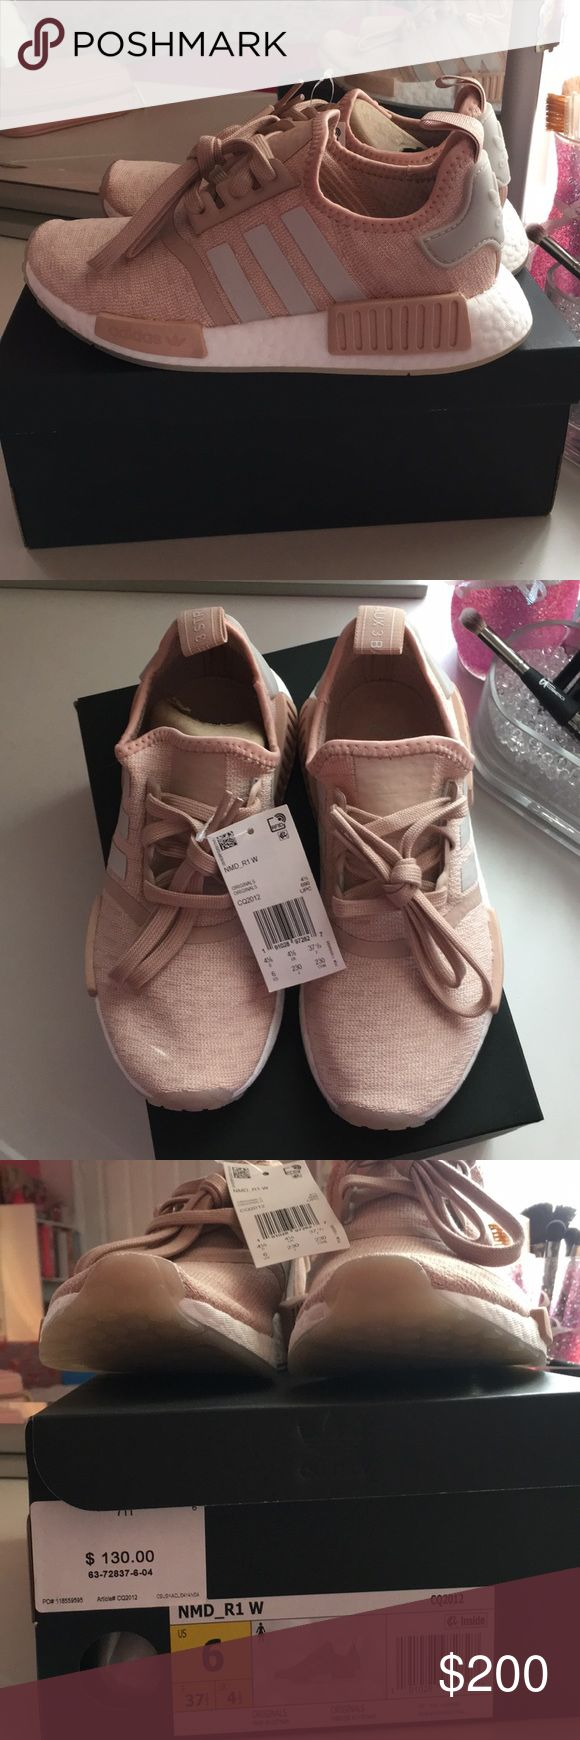 Adidas NMD R1 Women's 6 Chalk Pearl Beige Pink BRAND NEW. Comes with box & tags are still attached. 100% authentic but I can provide proof of purchase with receipt. Sold out online and everywhere!  Adidas NMDs tend to run about half a size bigger. These shoes will perfectly fit size 5.5-6  **Price on here is listed higher due to PM fees. If you would like to purchase for a lower cost, please message me! Thank you :) adidas Shoes Sneakers